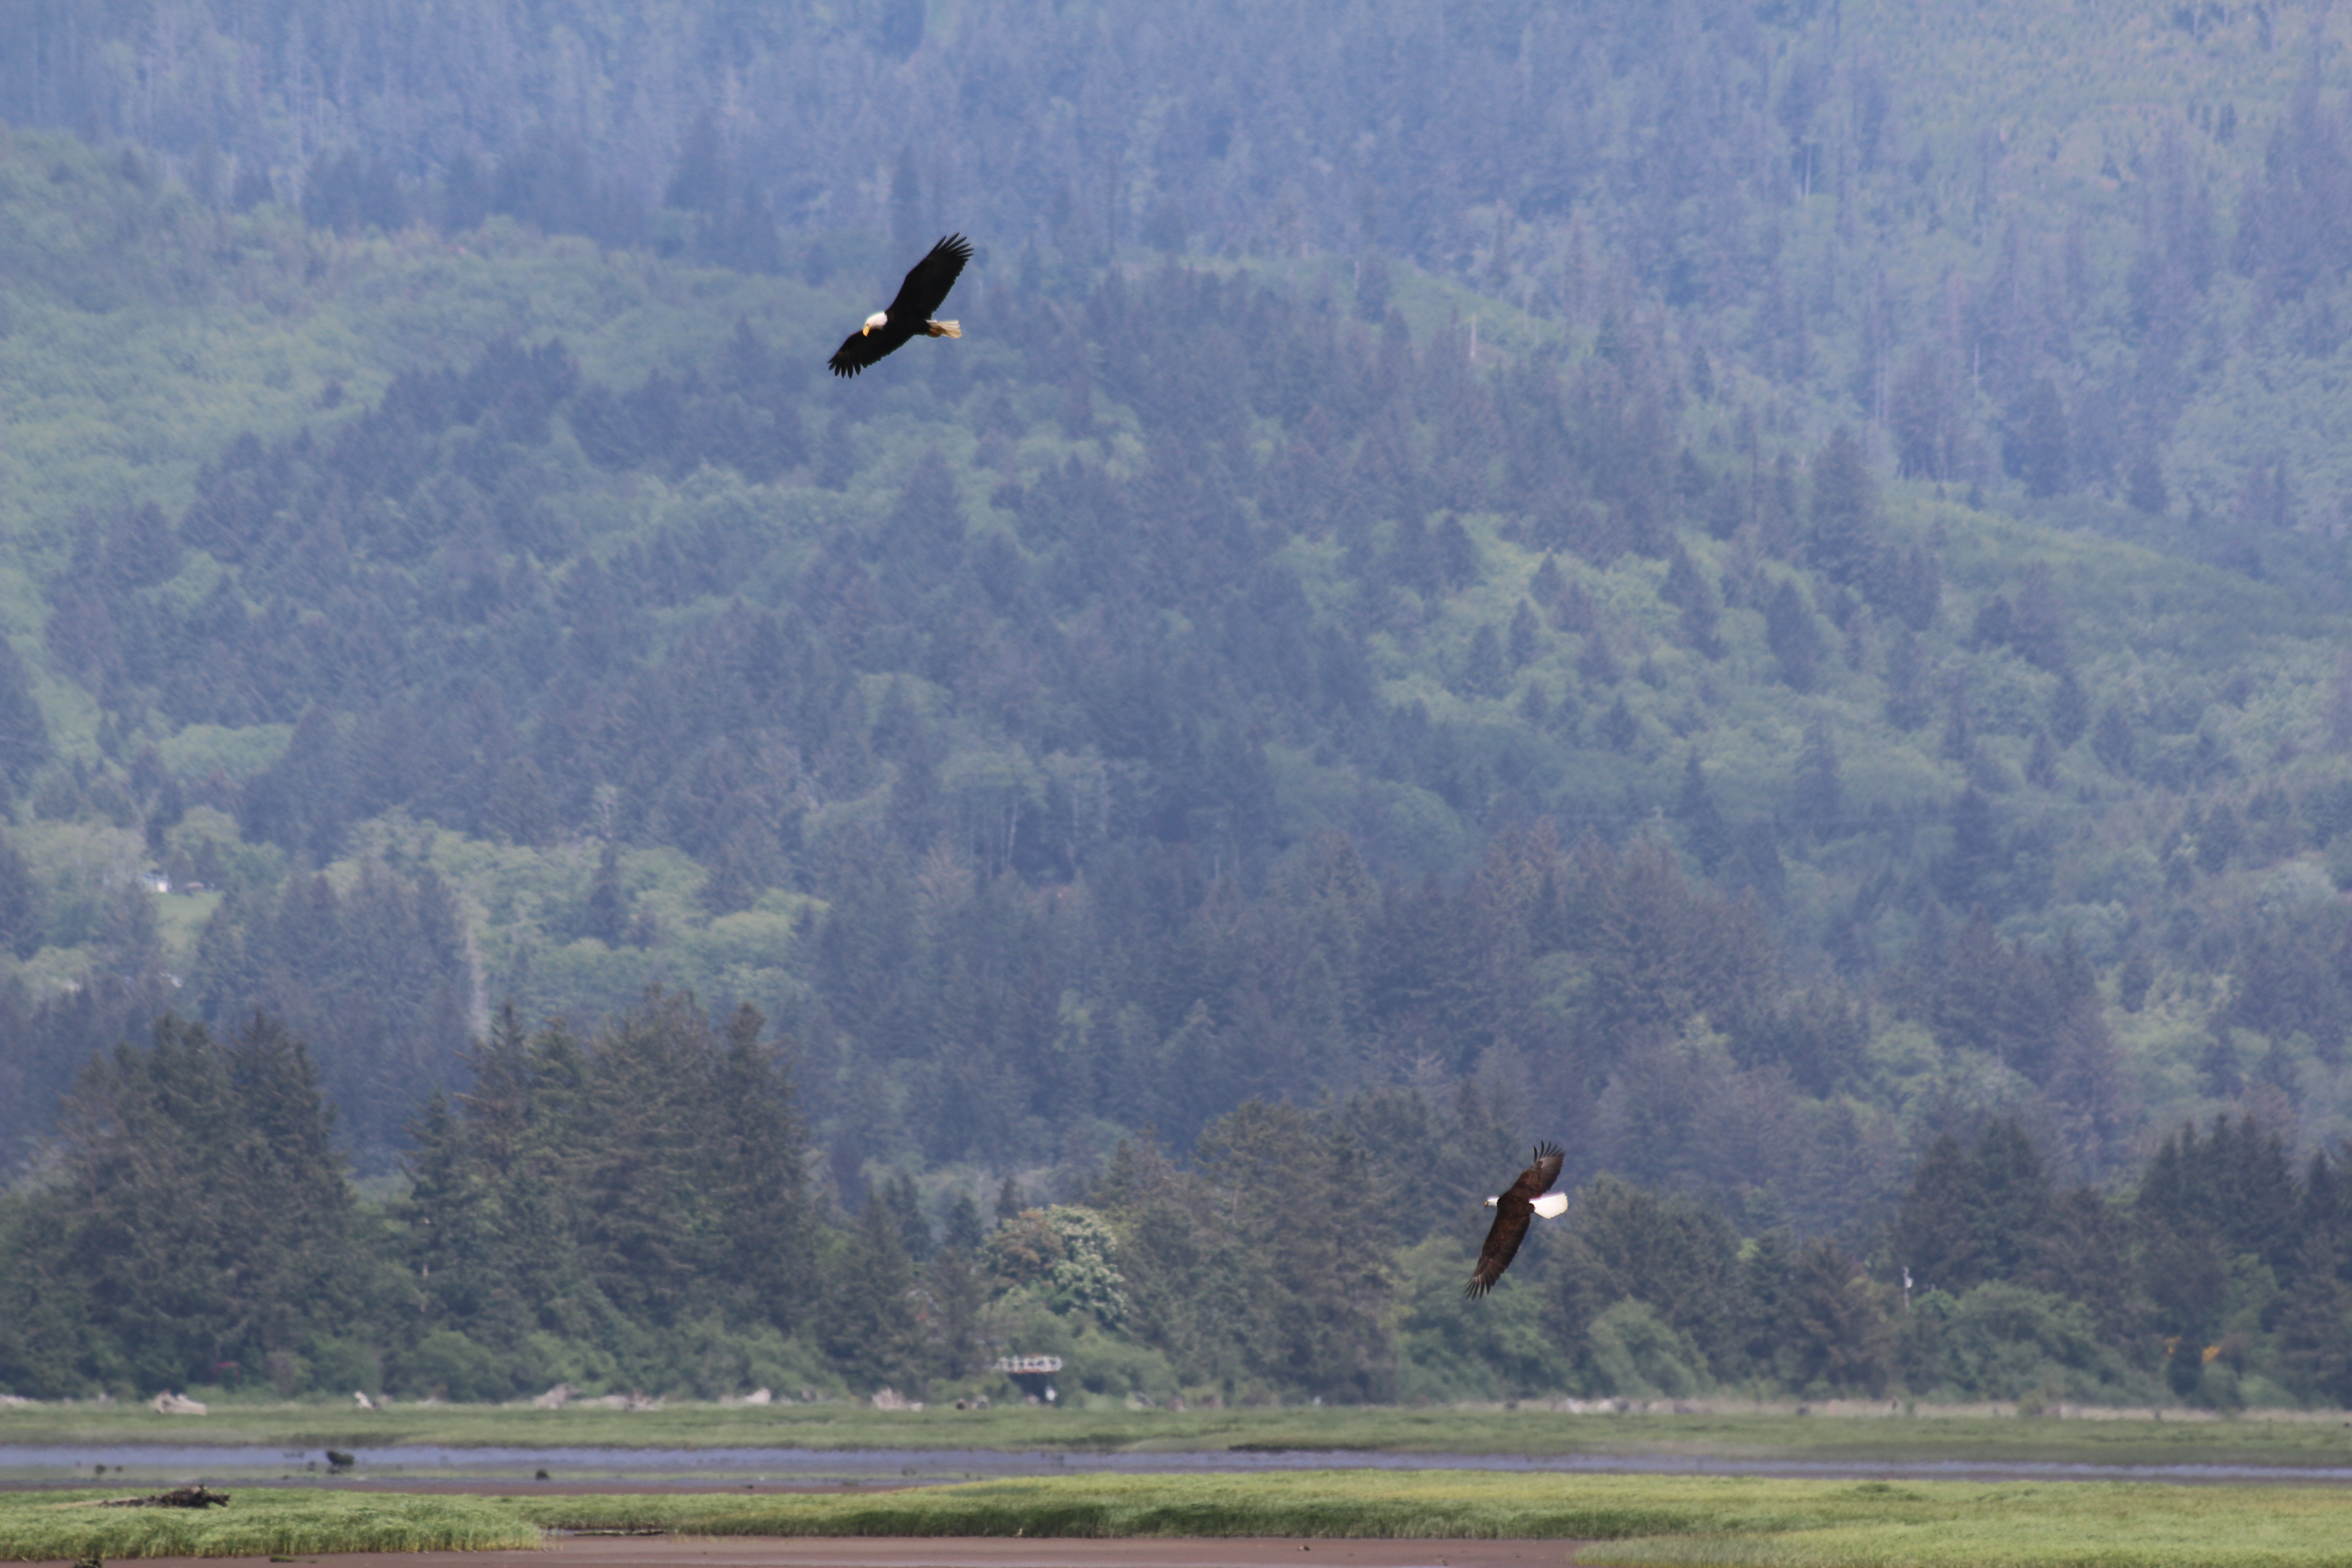 Two bald eagles soaring